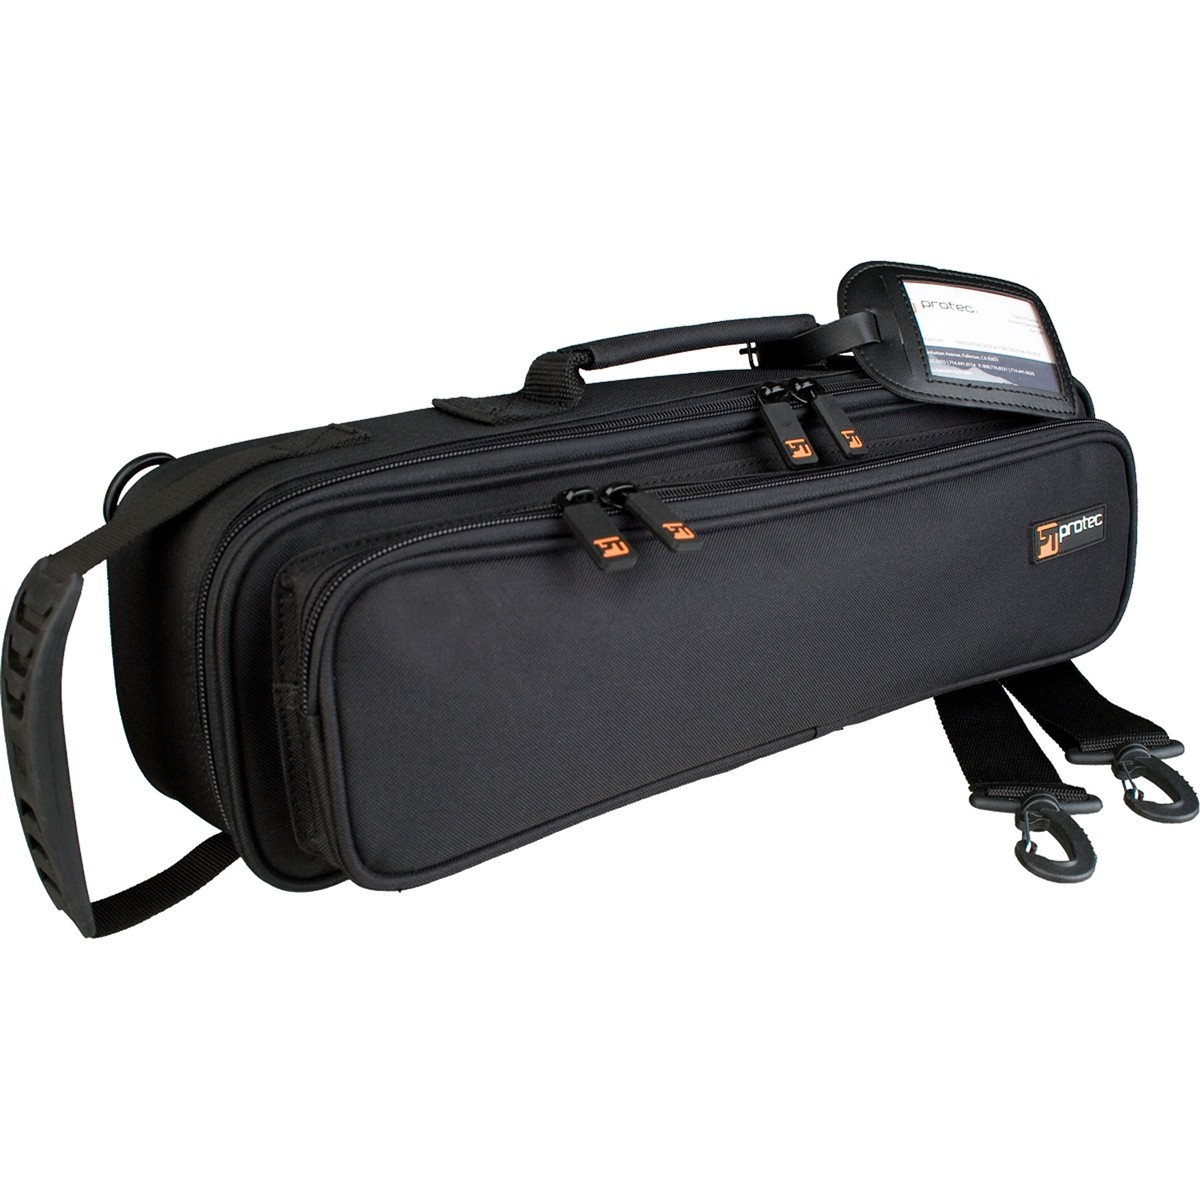 Protec Deluxe Flute Case Cover (A308)